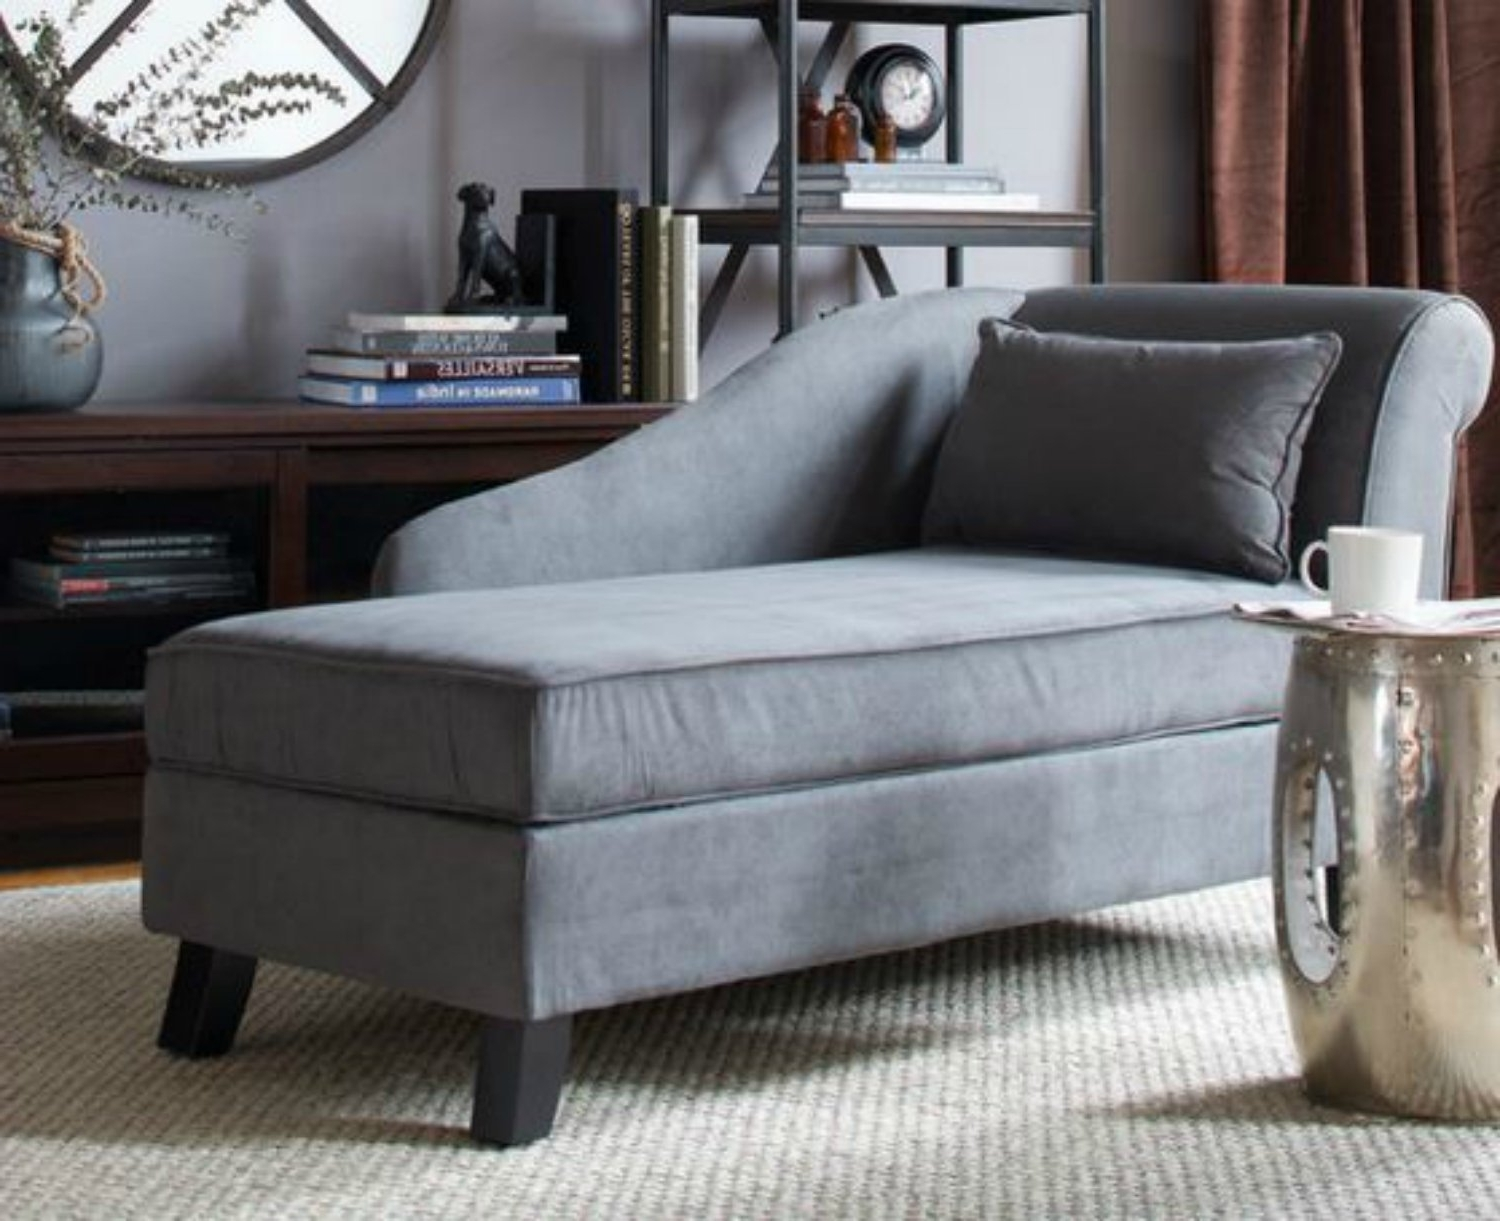 Amazon: Storage Chaise Lounge Chair  This Microfiber Within Recent Microfiber Chaise Lounge Chairs (View 10 of 15)